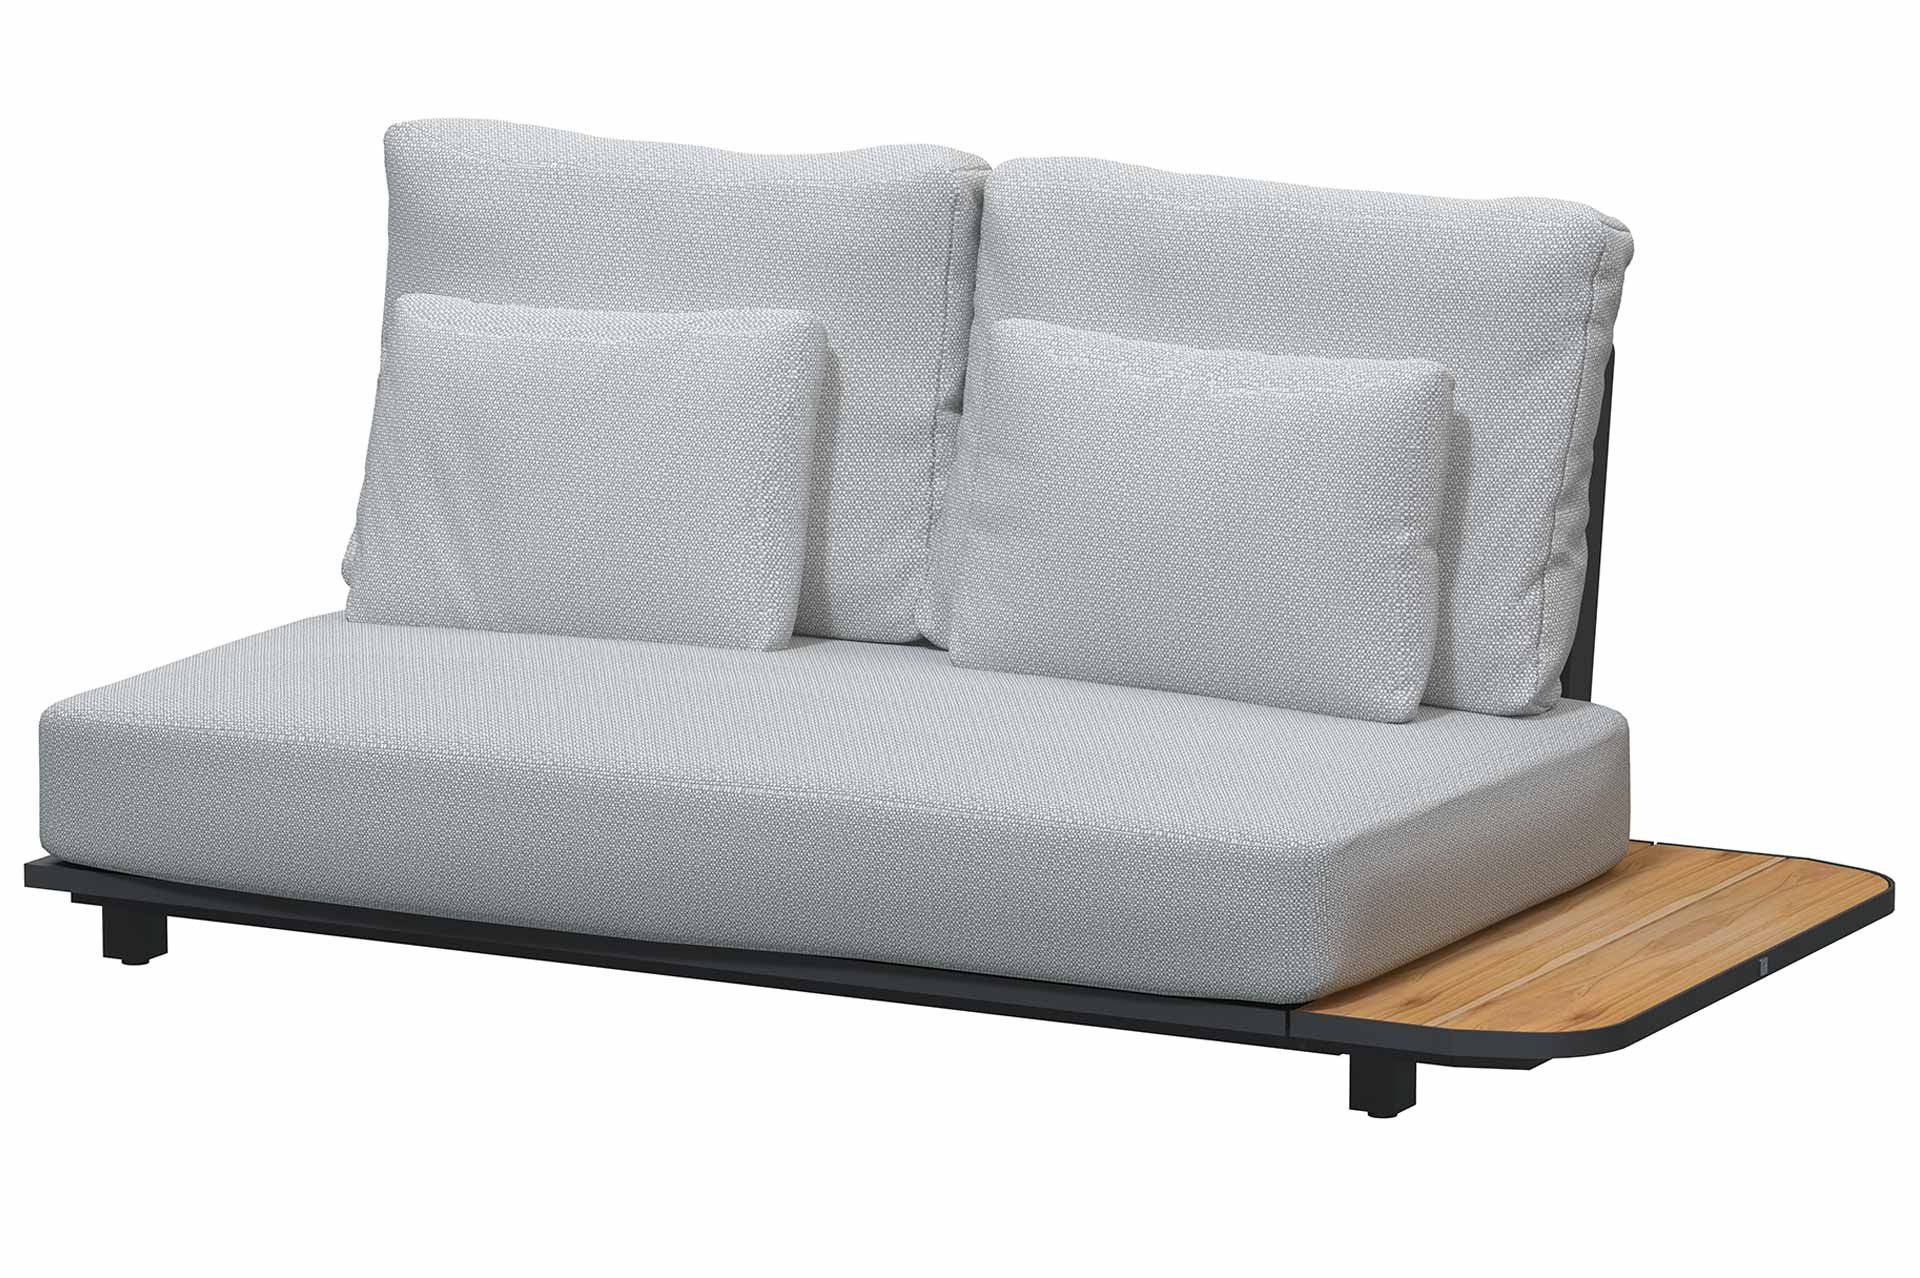 Arcade floating bench Left with 5 cushions